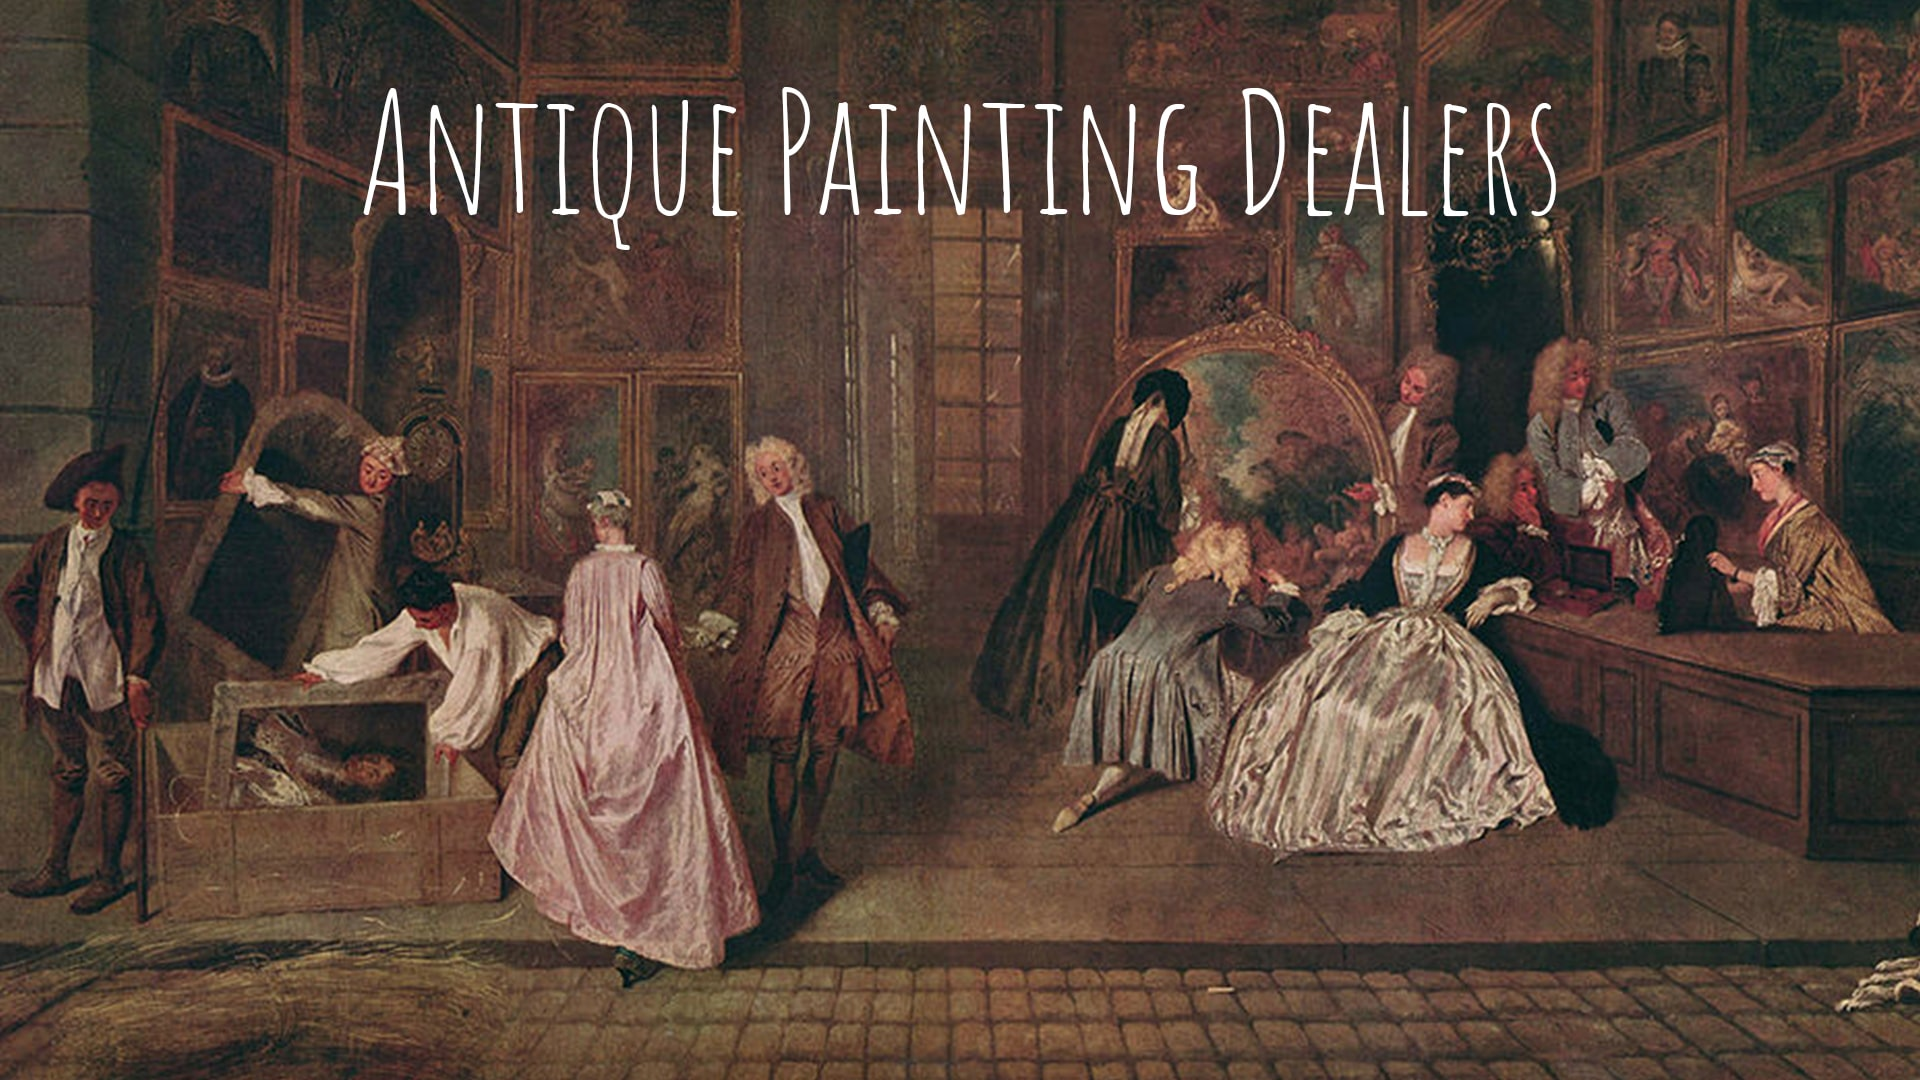 Antique Painting Dealers-AAB